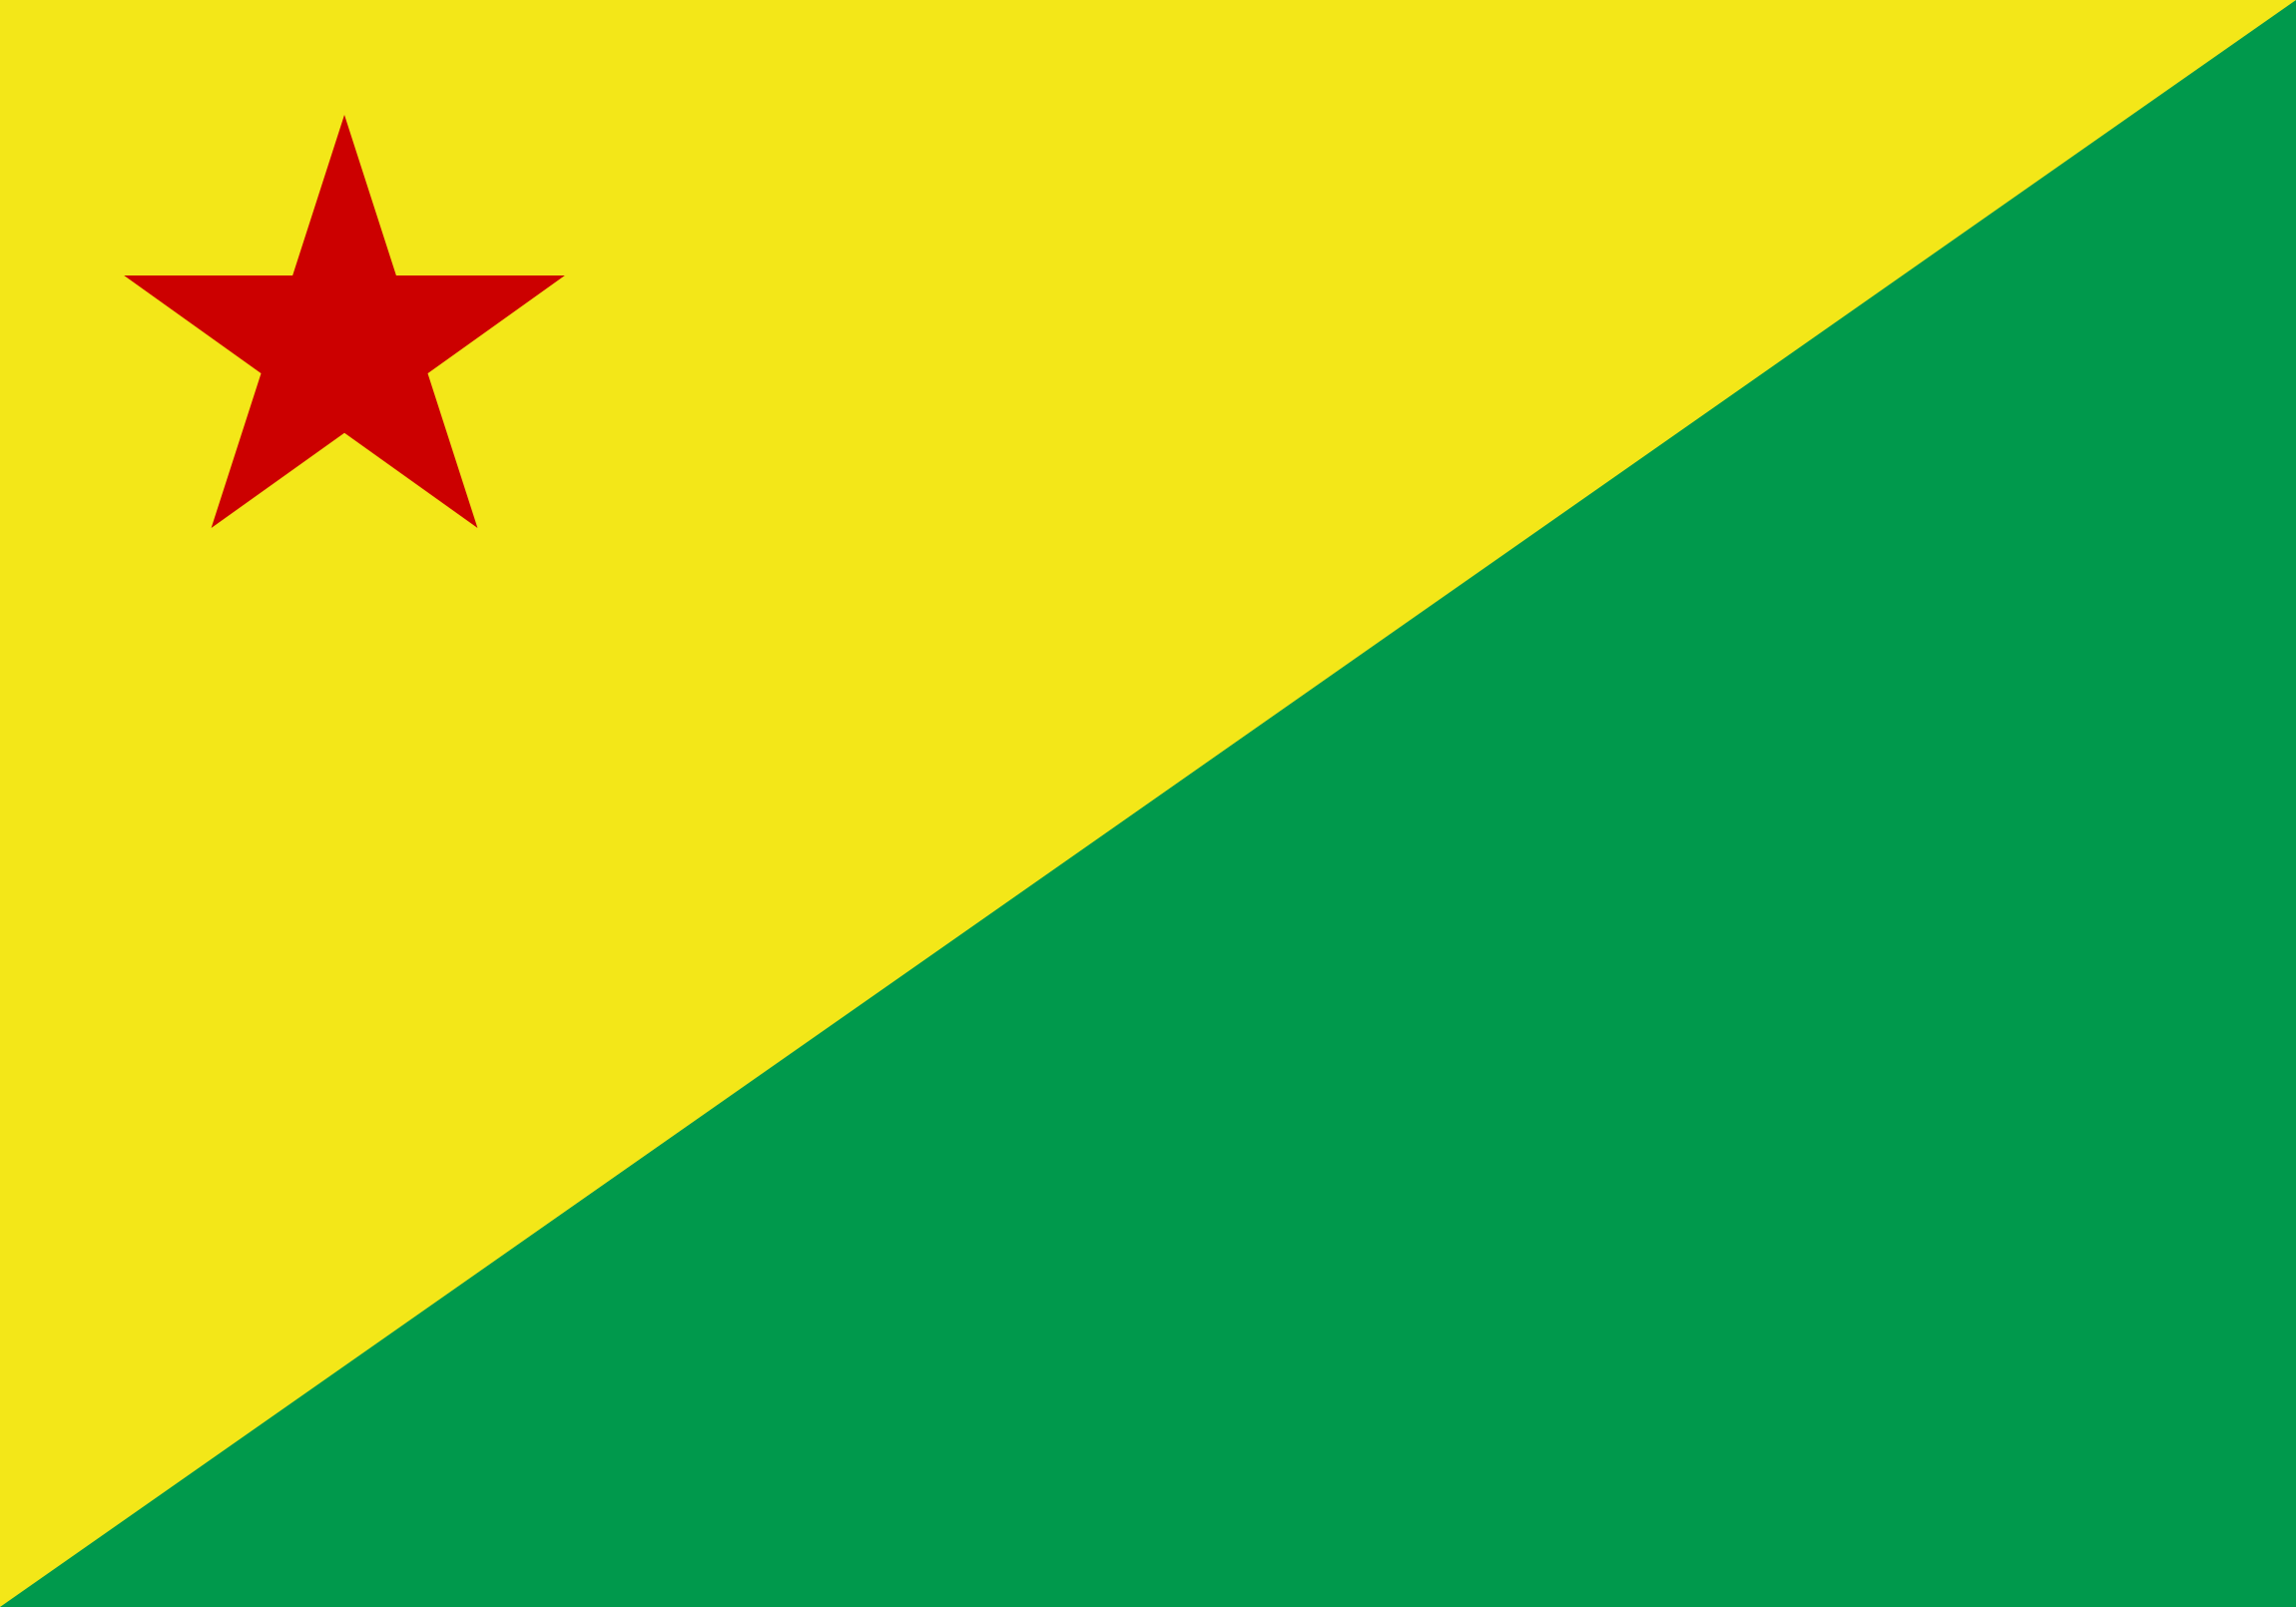 bandeira-do-acre-estado-1